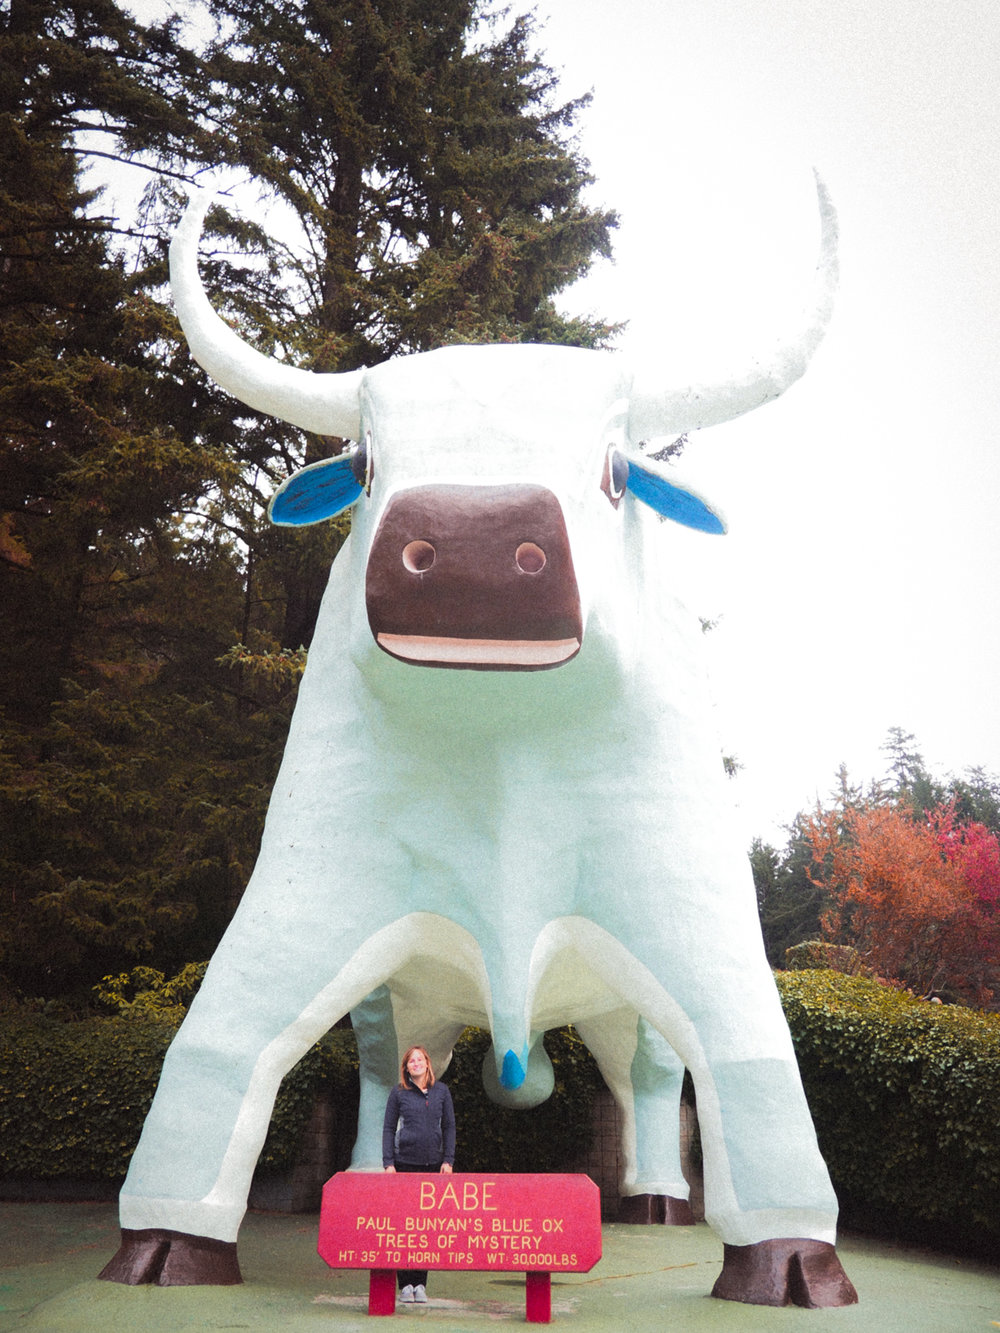 Babe the Blue Ox!